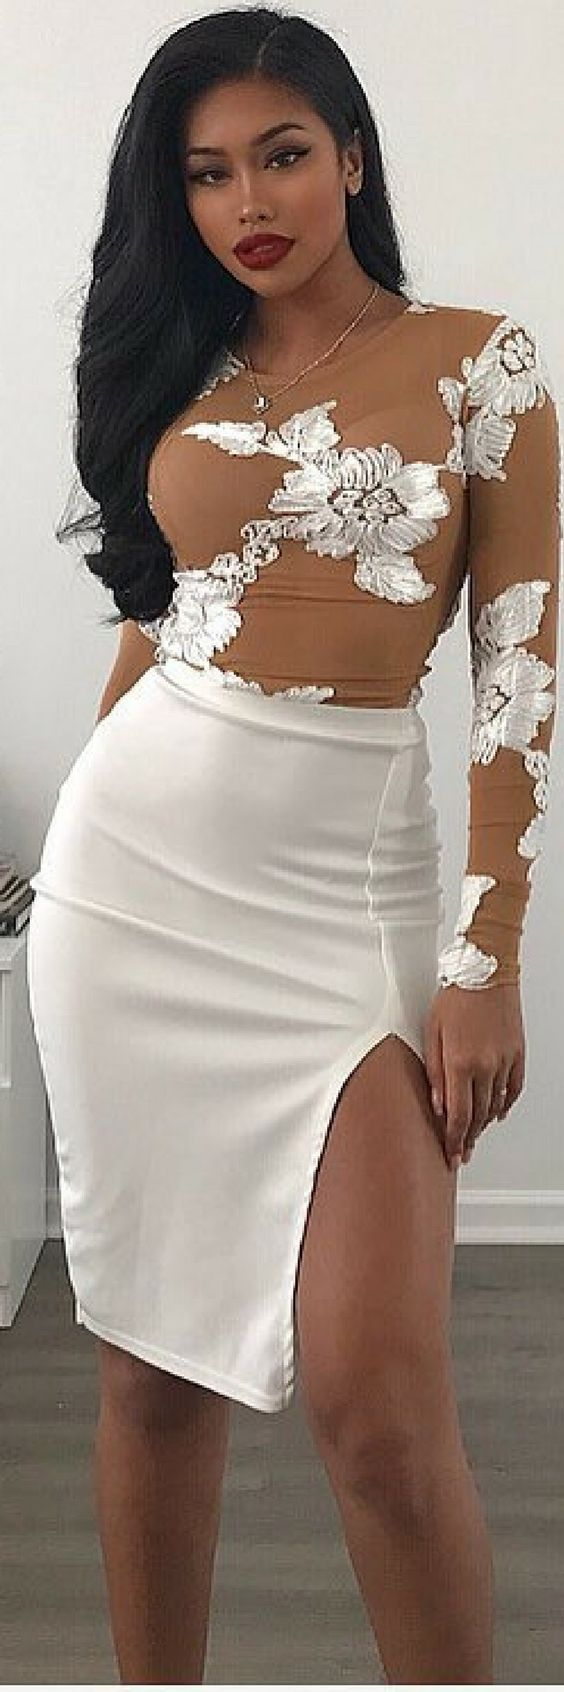 3 Of The Most Festive Outfit Ideas That Will Make You Flawless https://ecstasymodels.blog/2017/11/13/3-festive-outfit-ideas/